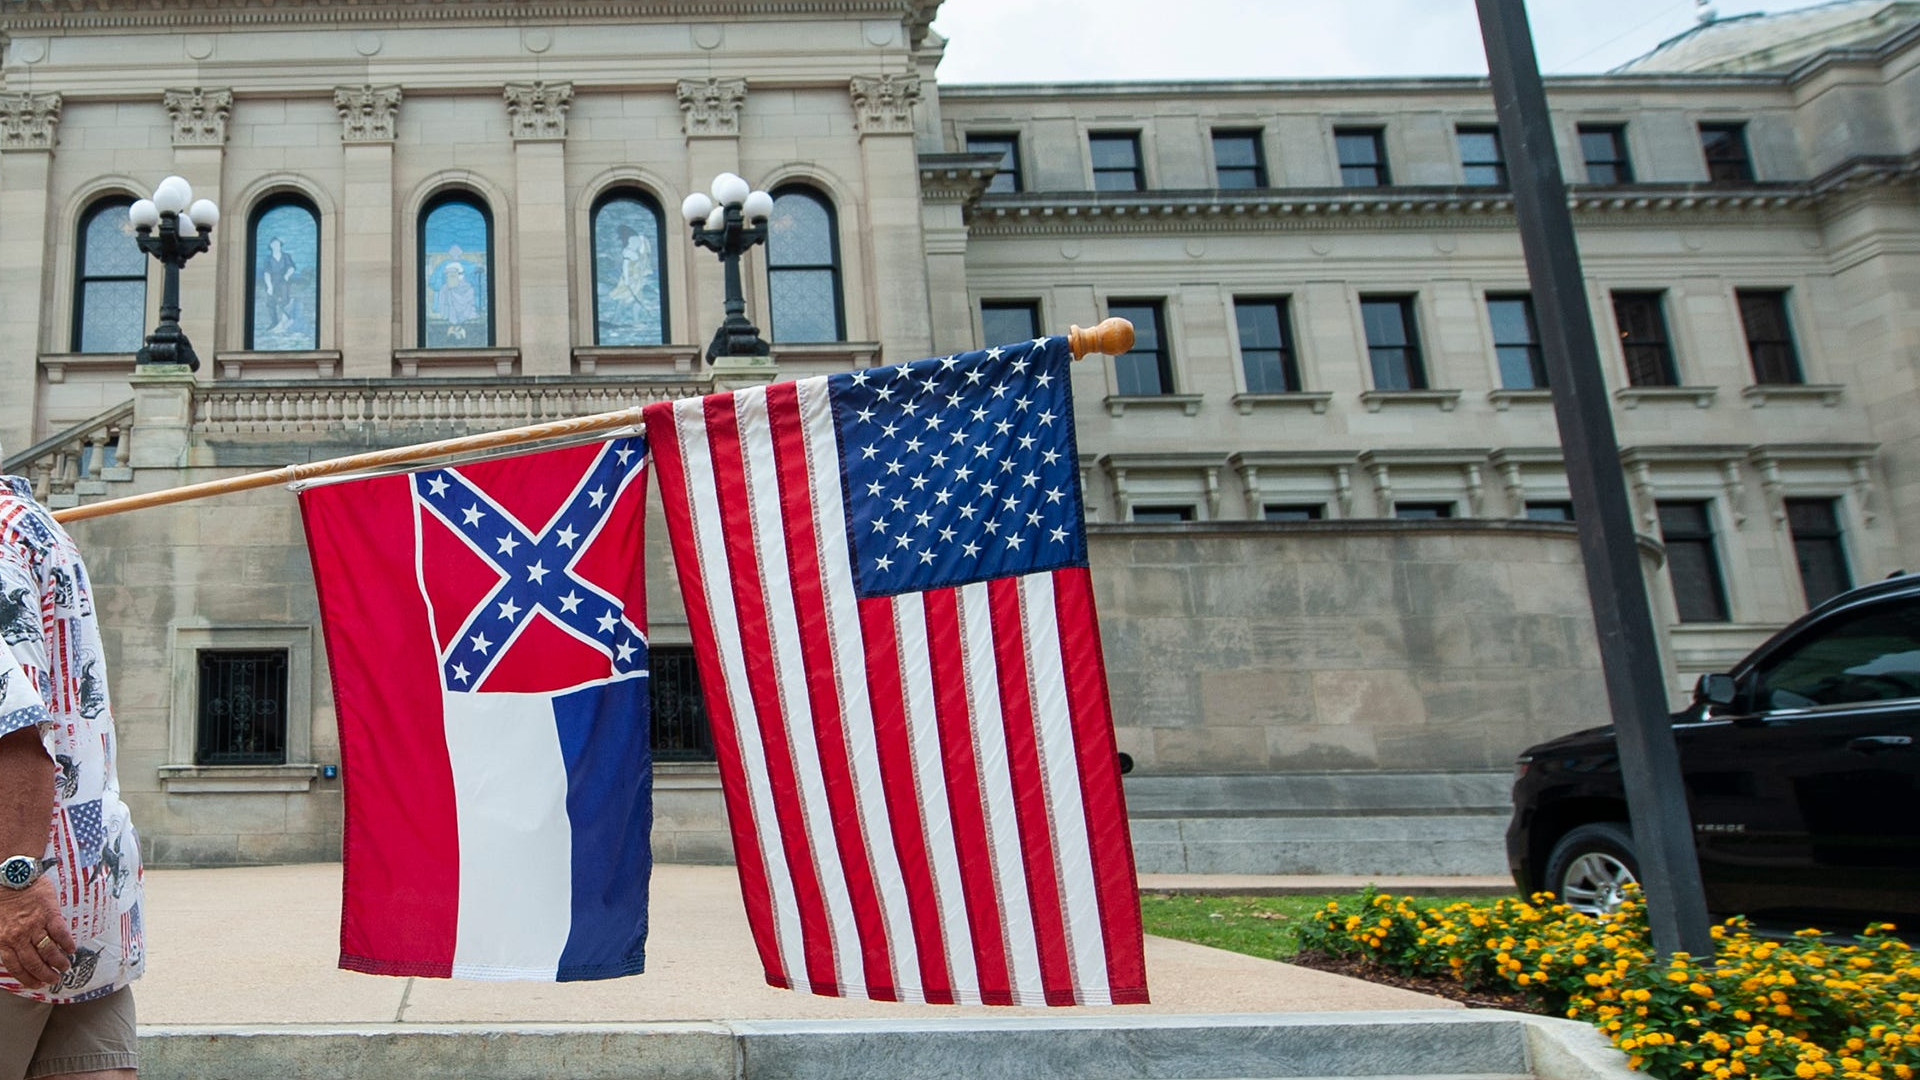 Mississippi to change state flag after pressure from NCAA, SEC